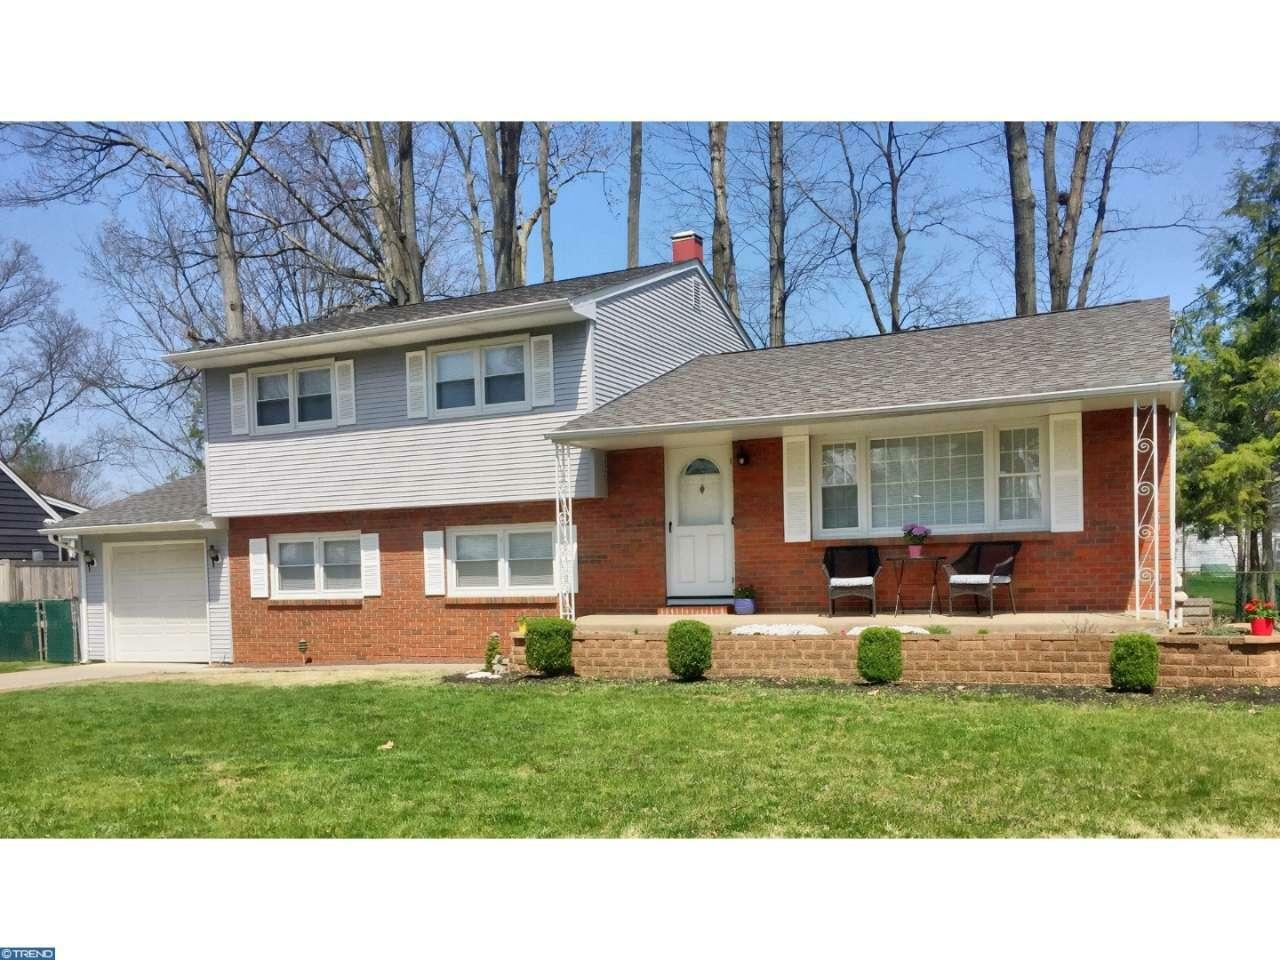 140 Susan Dr, Ewing, NJ - USA (photo 1)